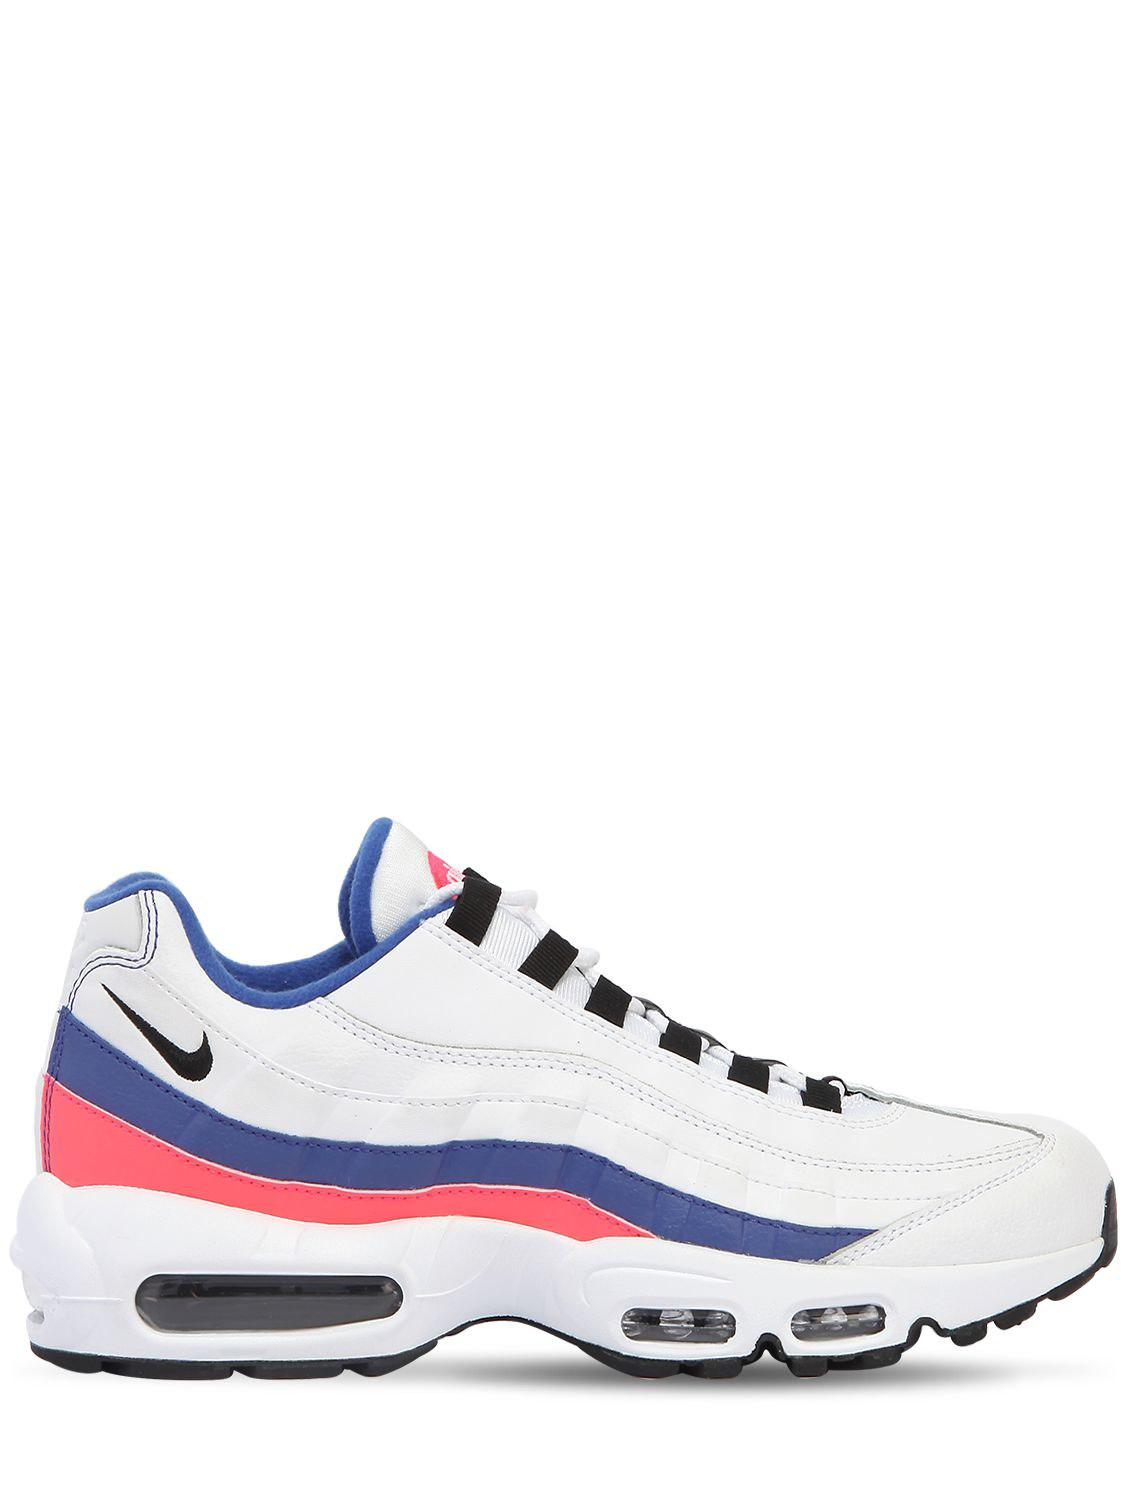 7ca8ff11e4 Nike Air Max 95 Essential Sneakers in Blue for Men - Lyst